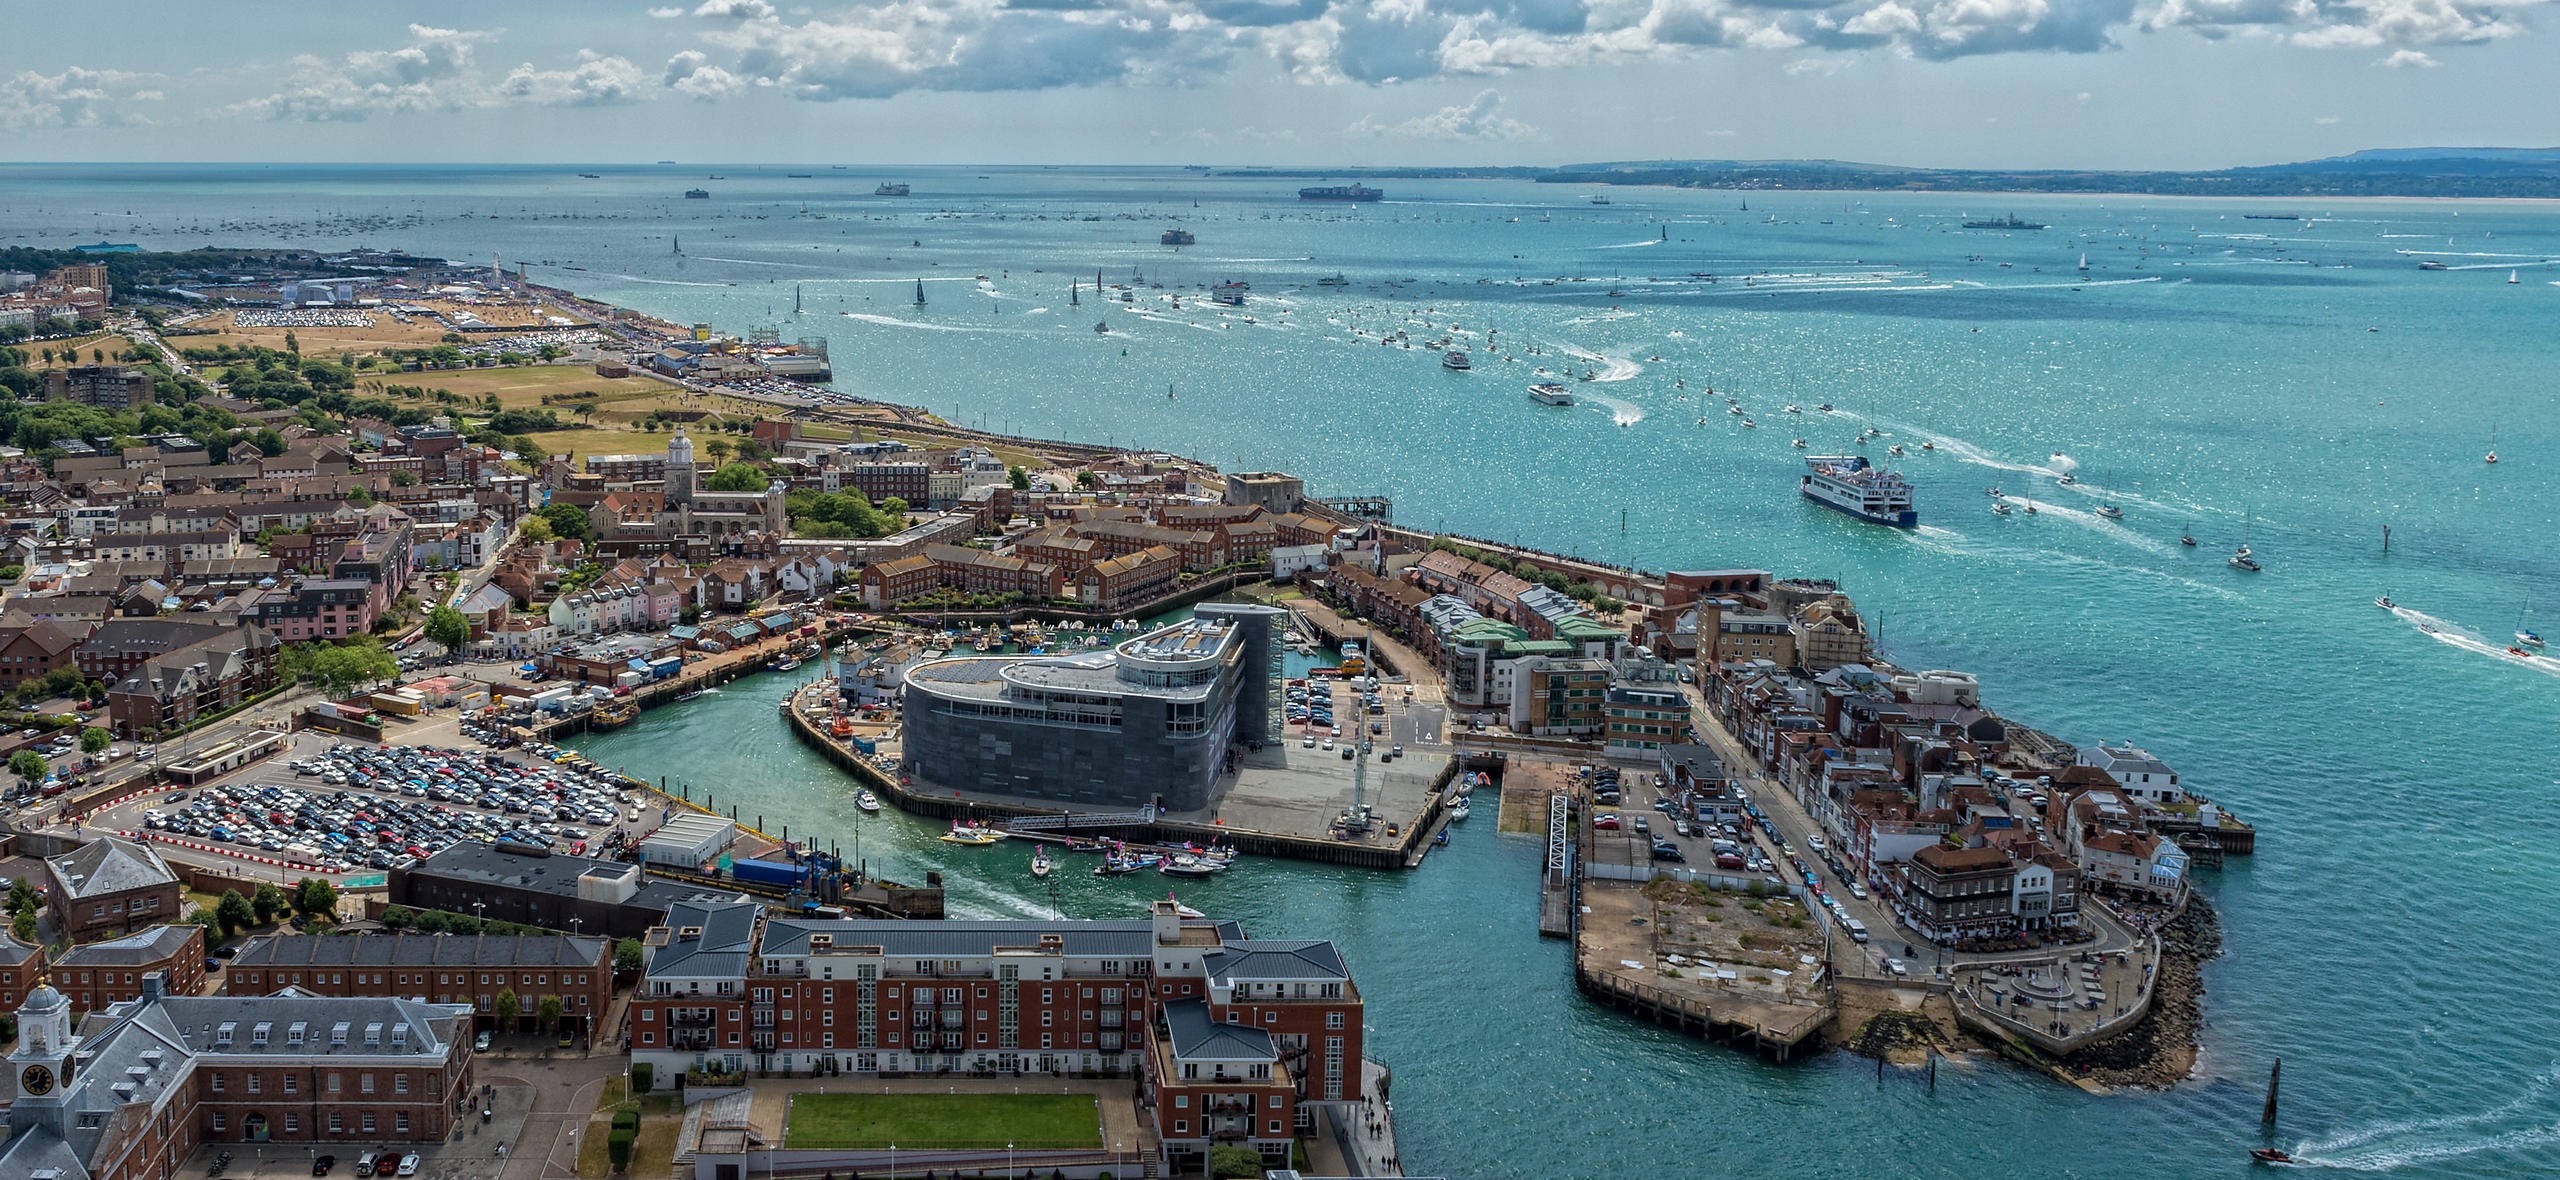 Aerial View of America's Cup Boats at Portsmouth Harbour, England